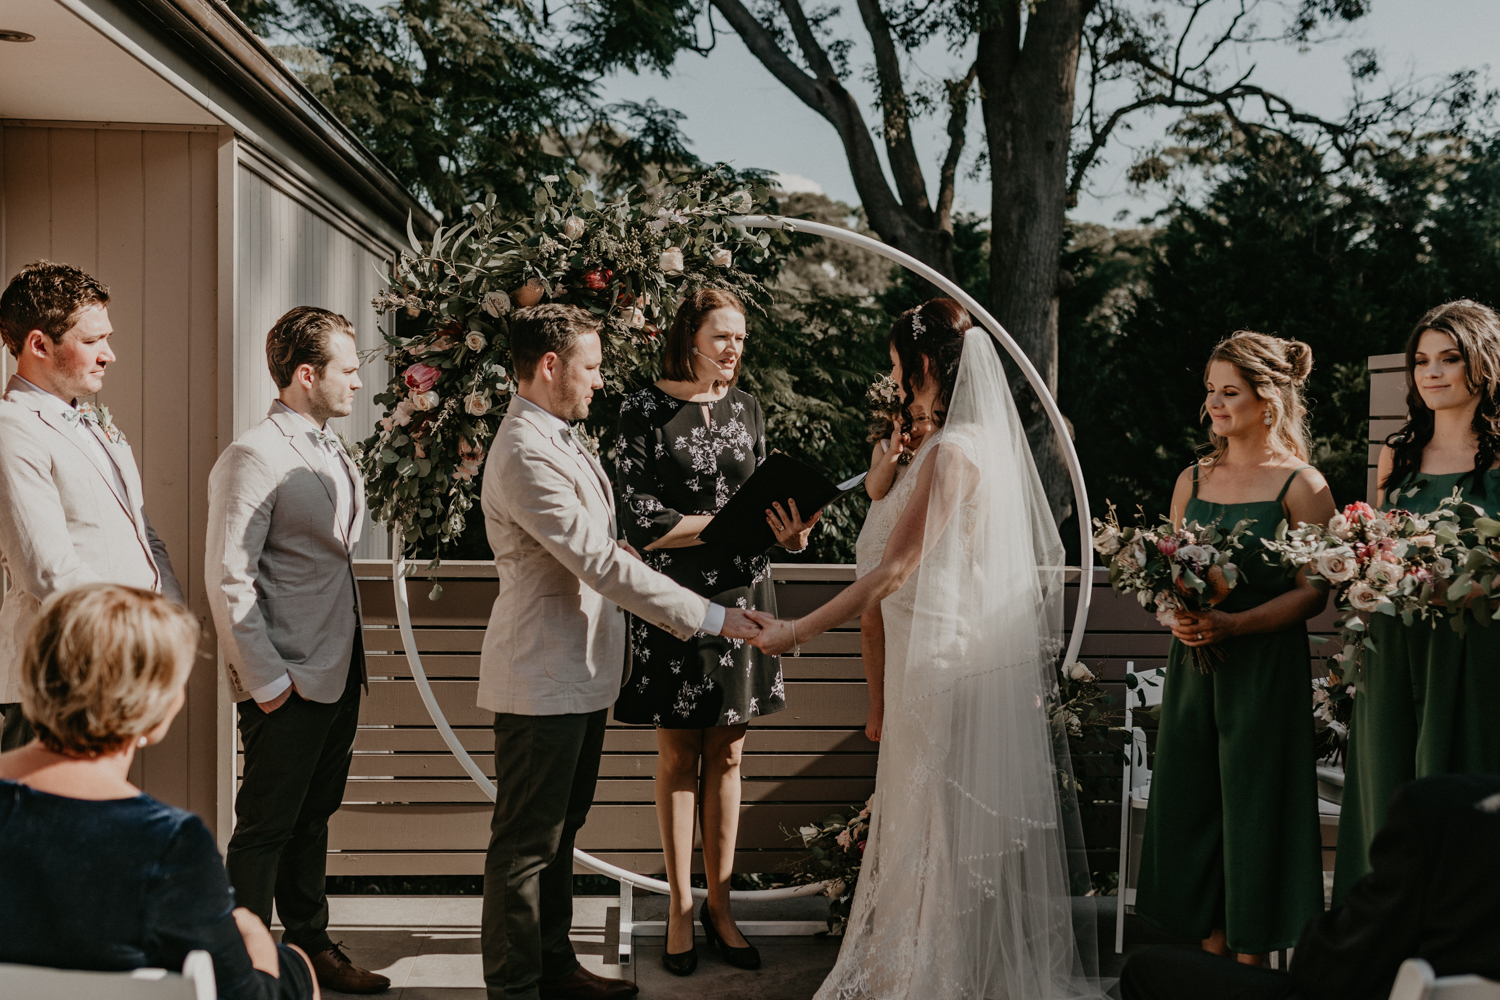 Sydney Romantic Authentic Natural Free Spirit Candid Wedding Photography-41.jpg